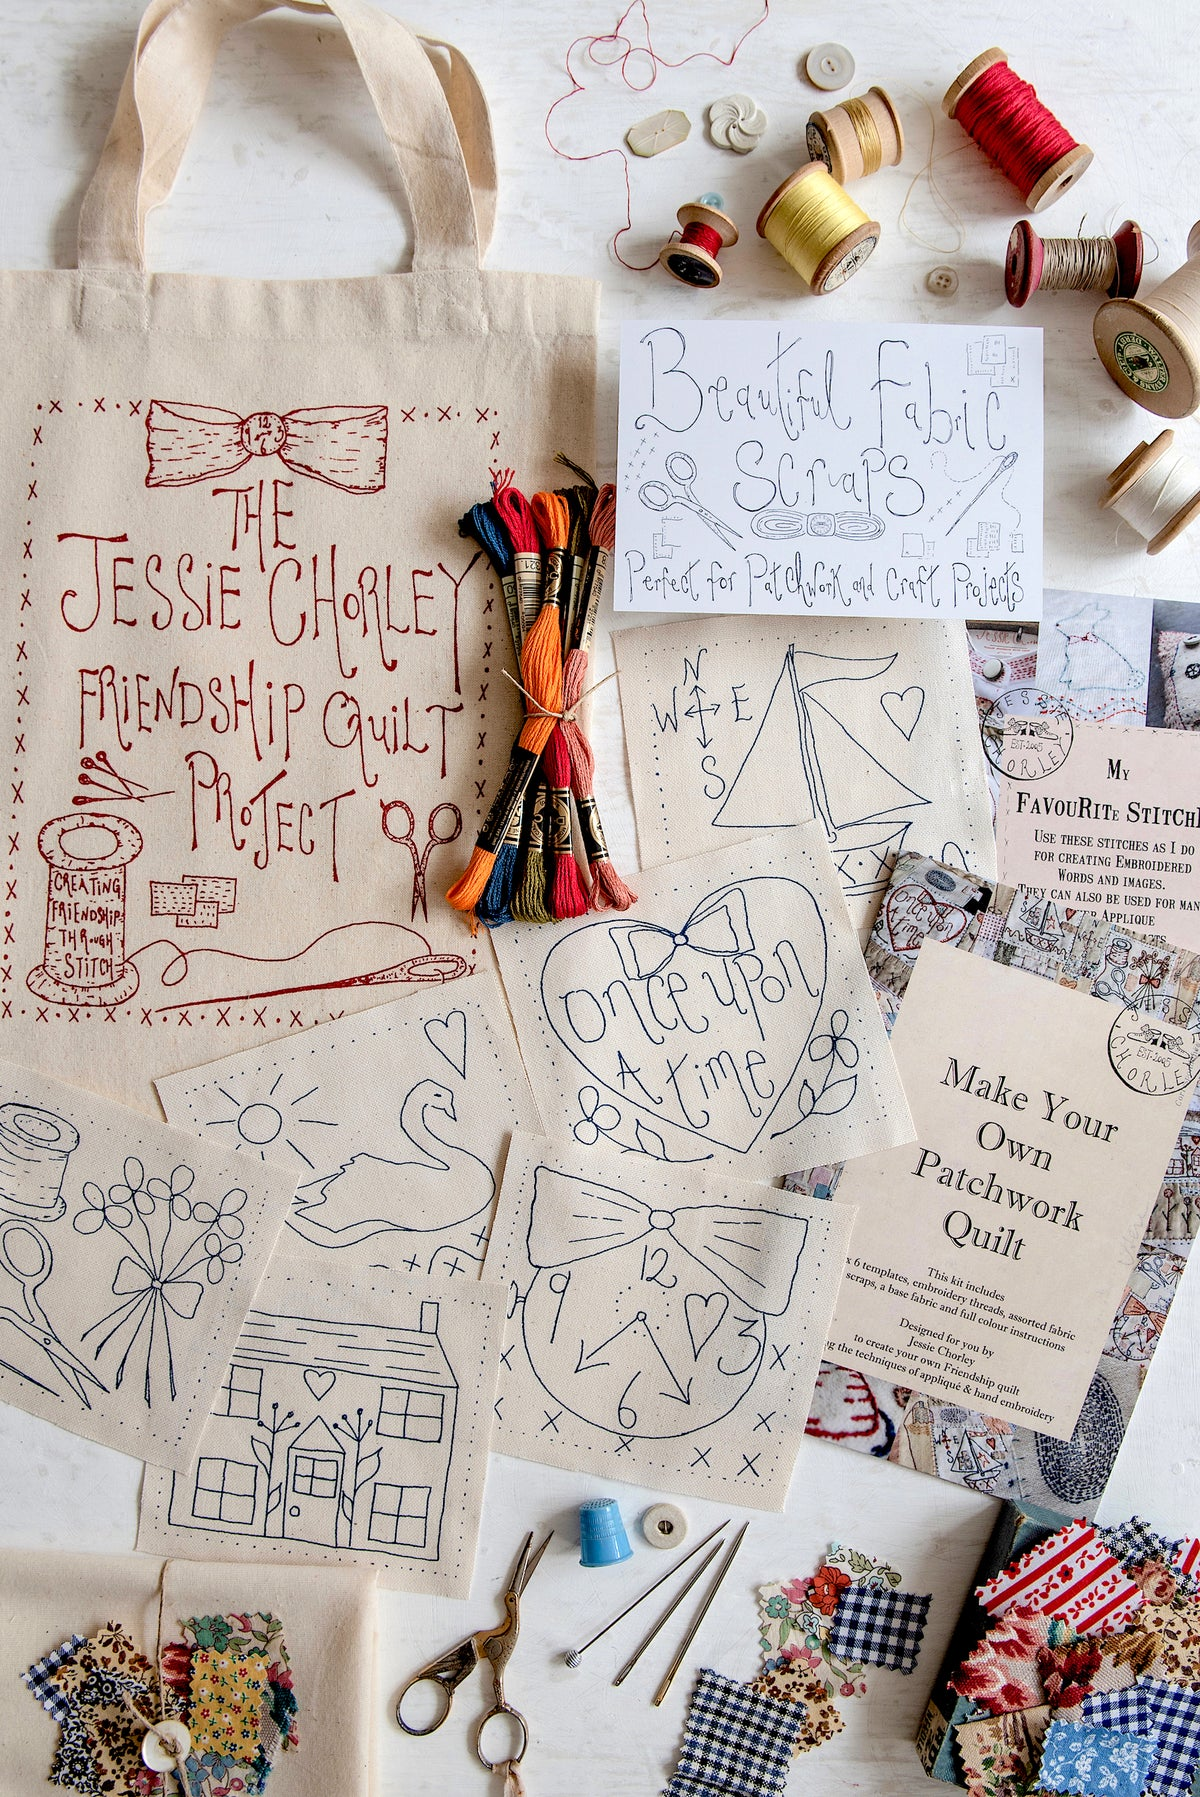 Image of 'The Jessie Chorley Friendship Quilt' kit